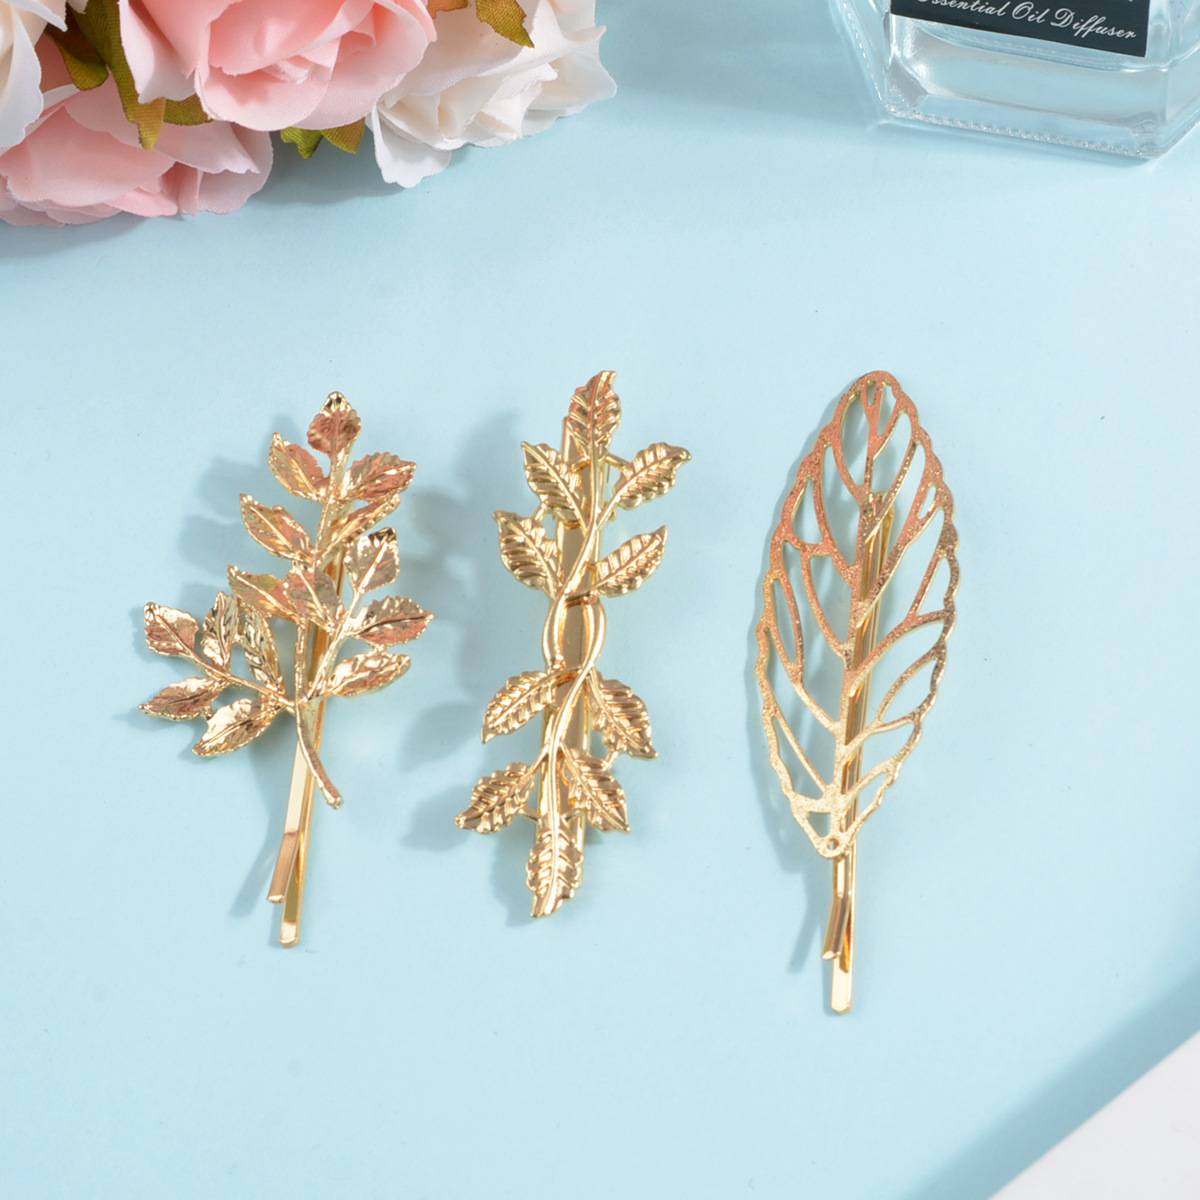 1PC Fashion Metal Hair Clips Leaf Feather Shape Barrettes For Women Geometry Hairpins Headwear Hair Accessories Styling Tools